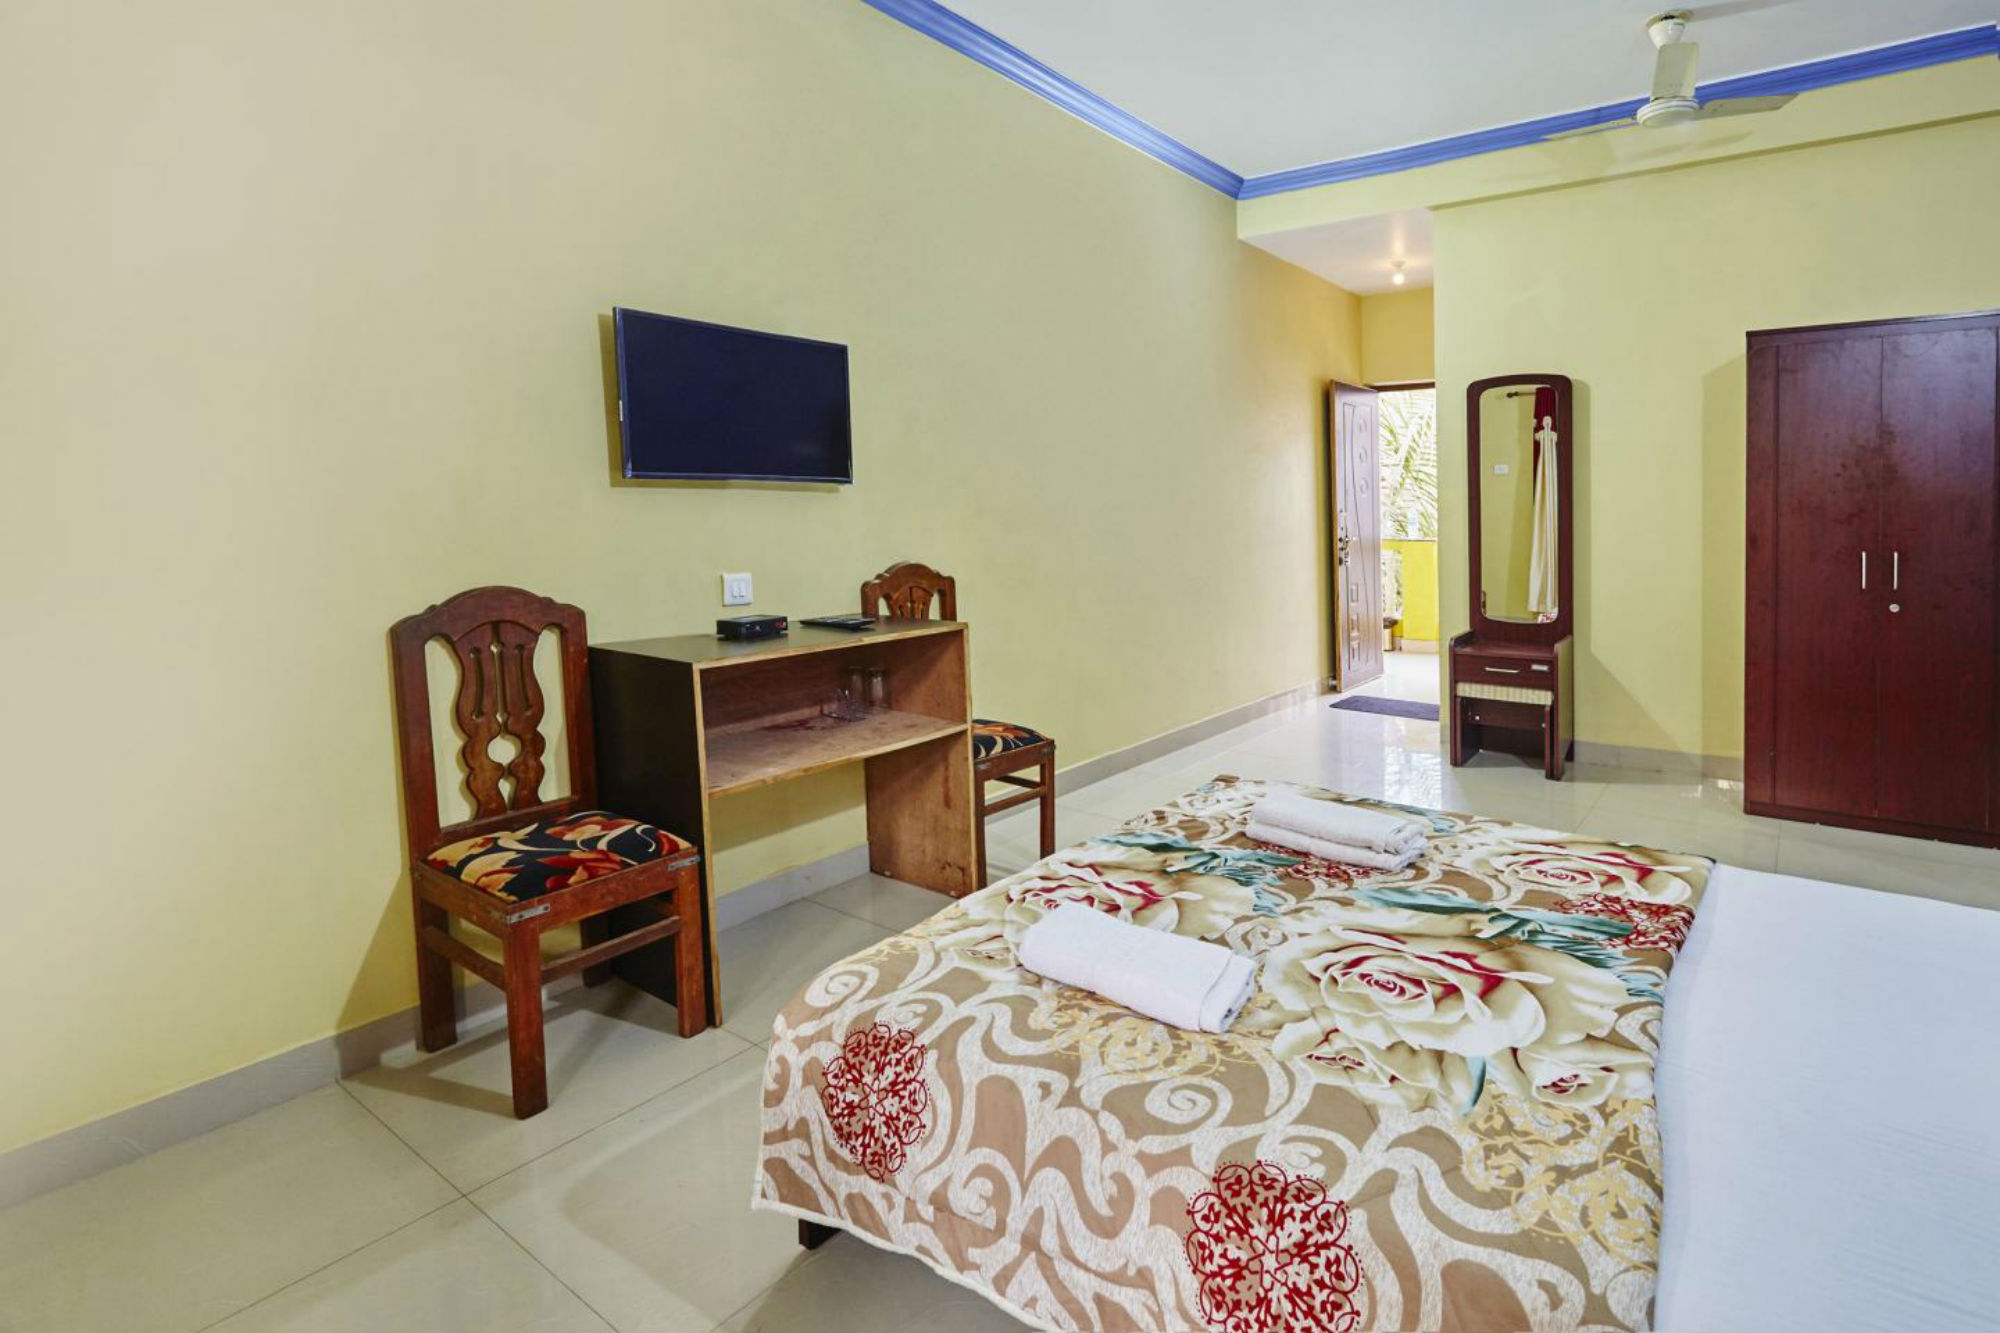 Budget Hotels near Calangute Beach Goa